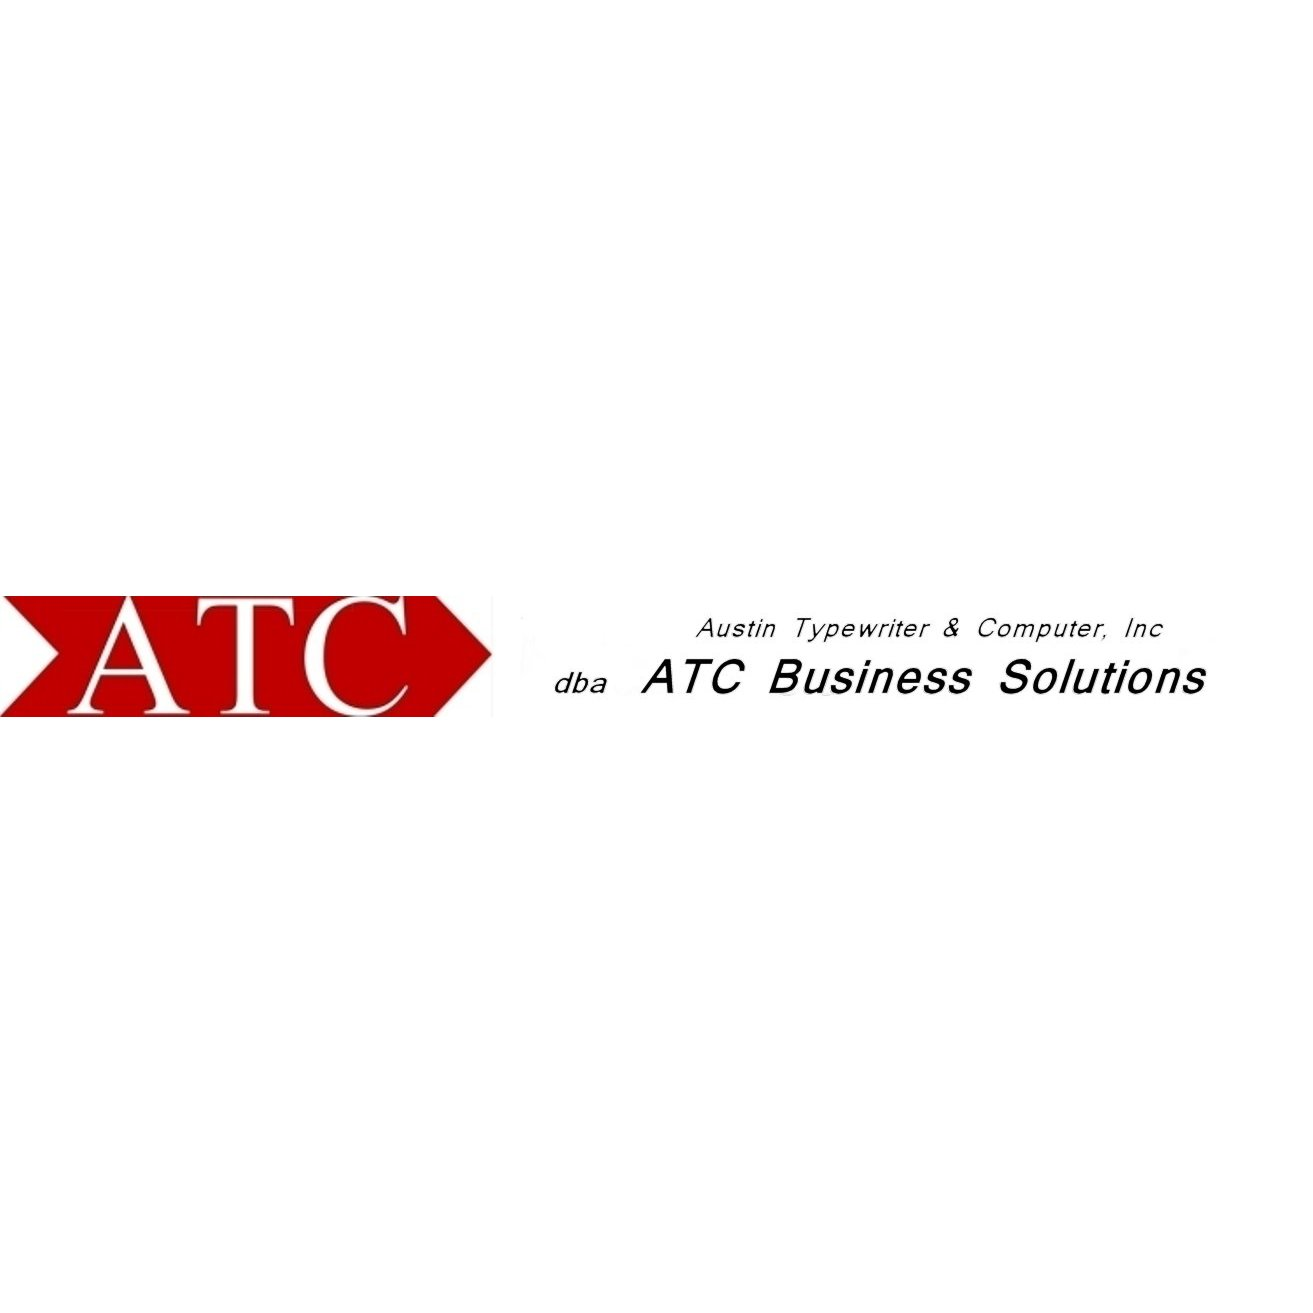 Austin Typewriter & Computer, Inc- dba ATC Business Solutions